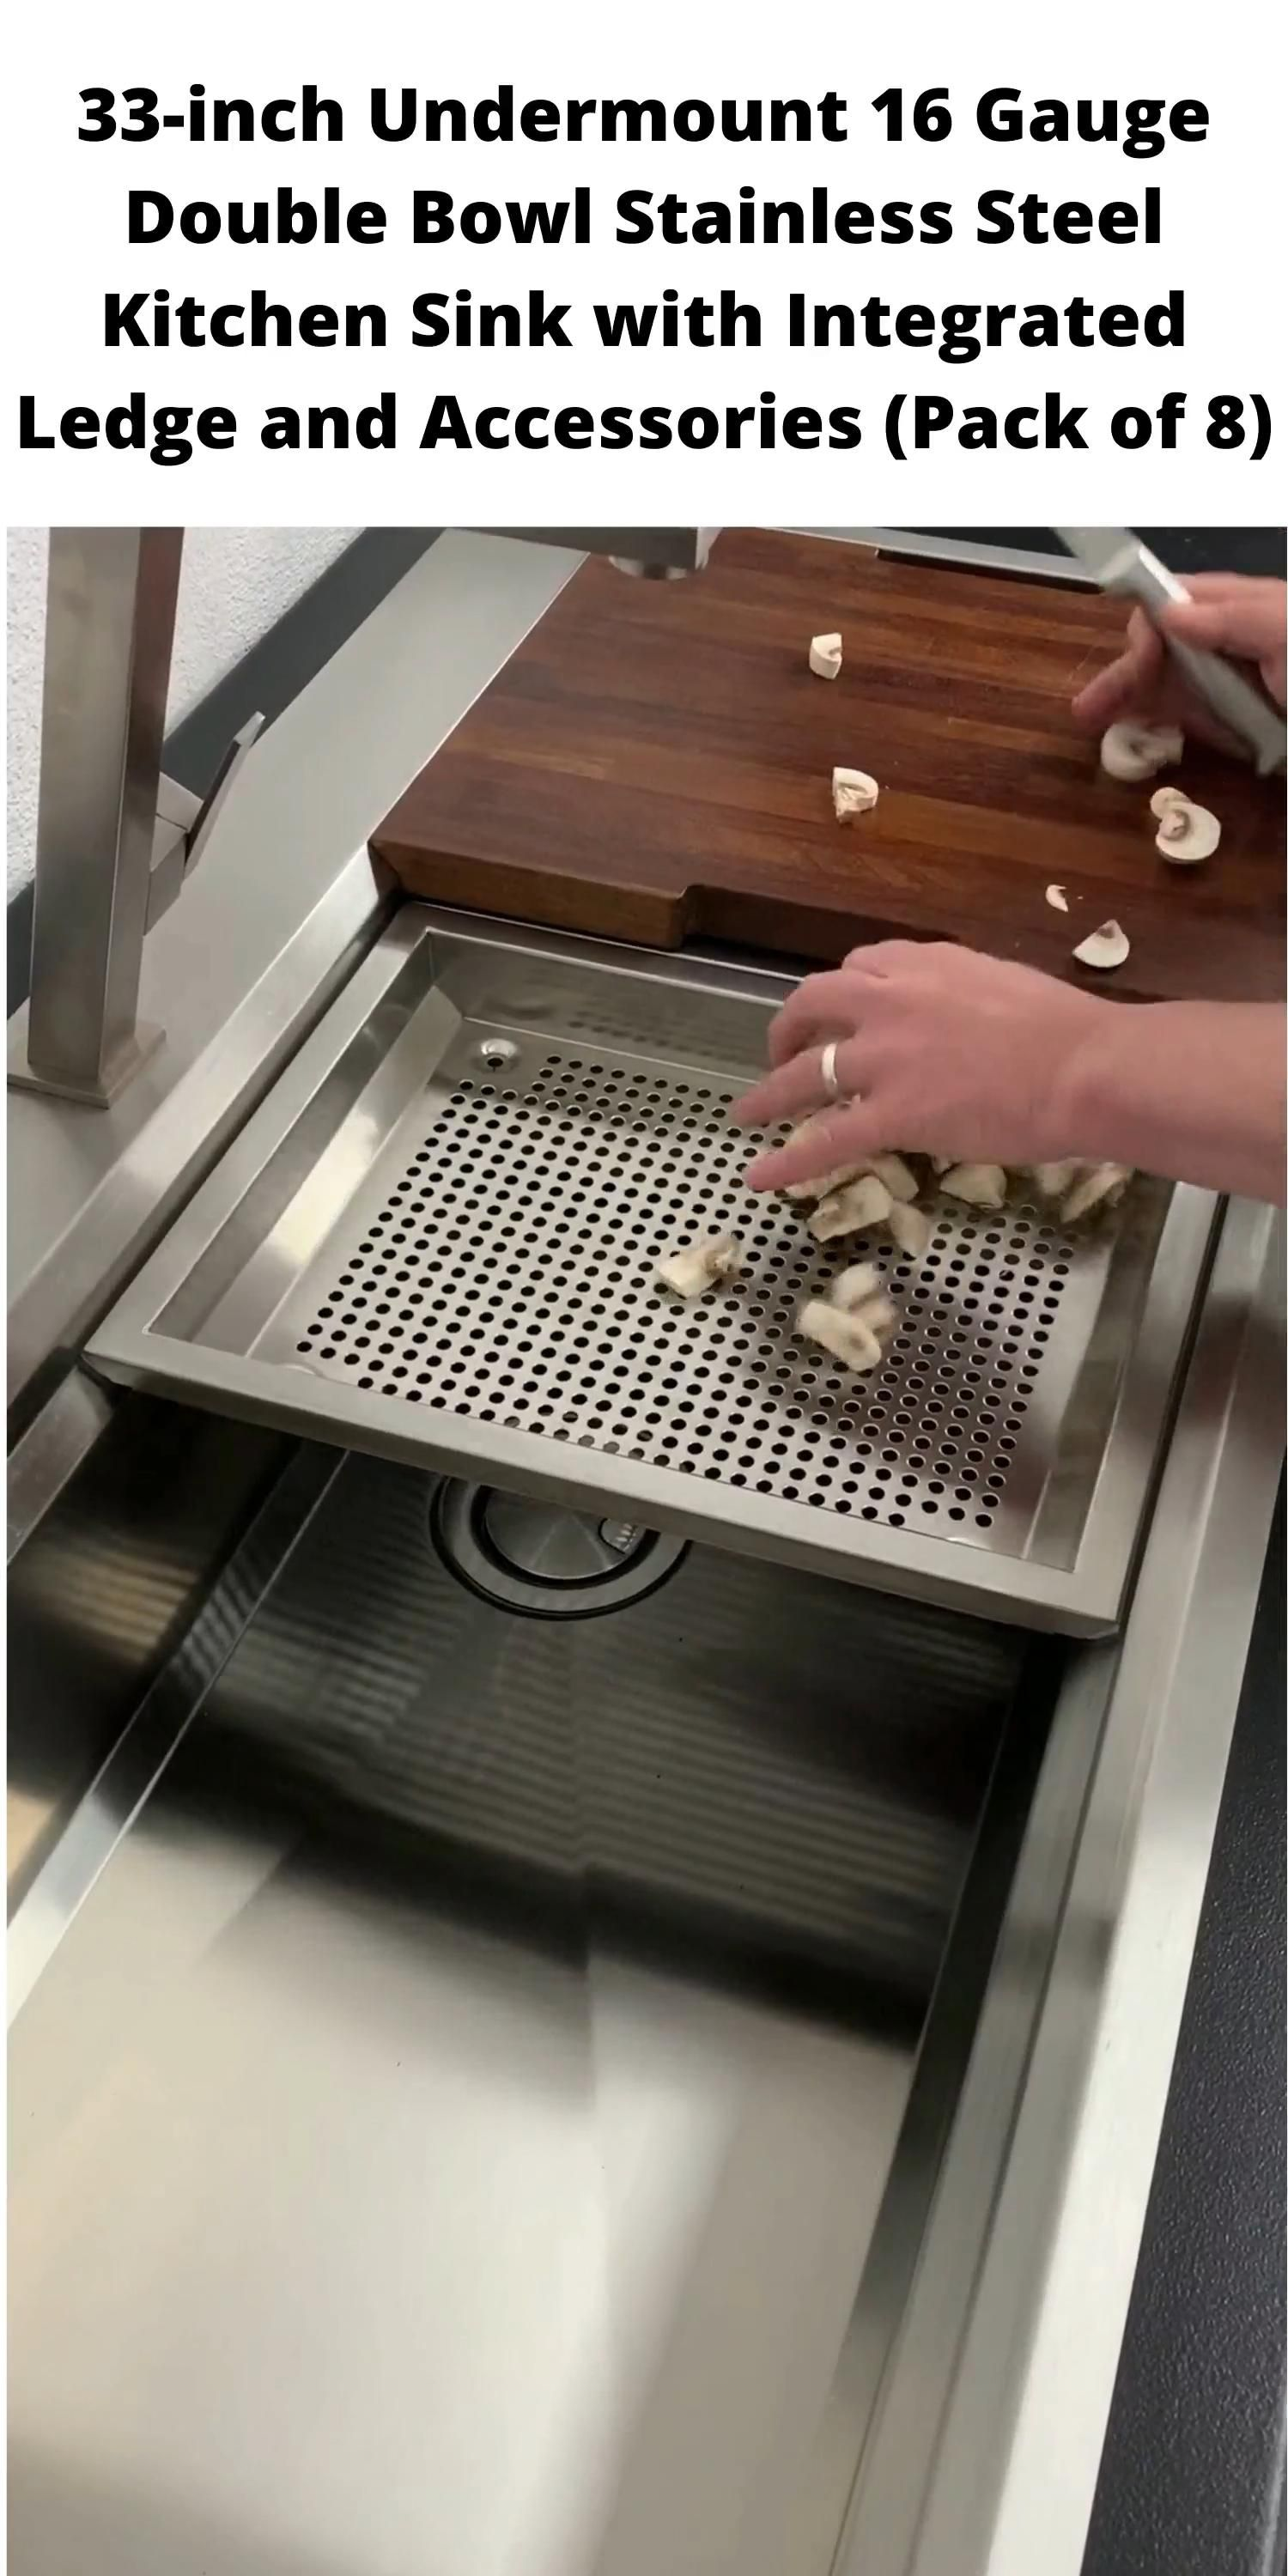 33-inch Undermount 16 Gauge Double Bowl Stainless